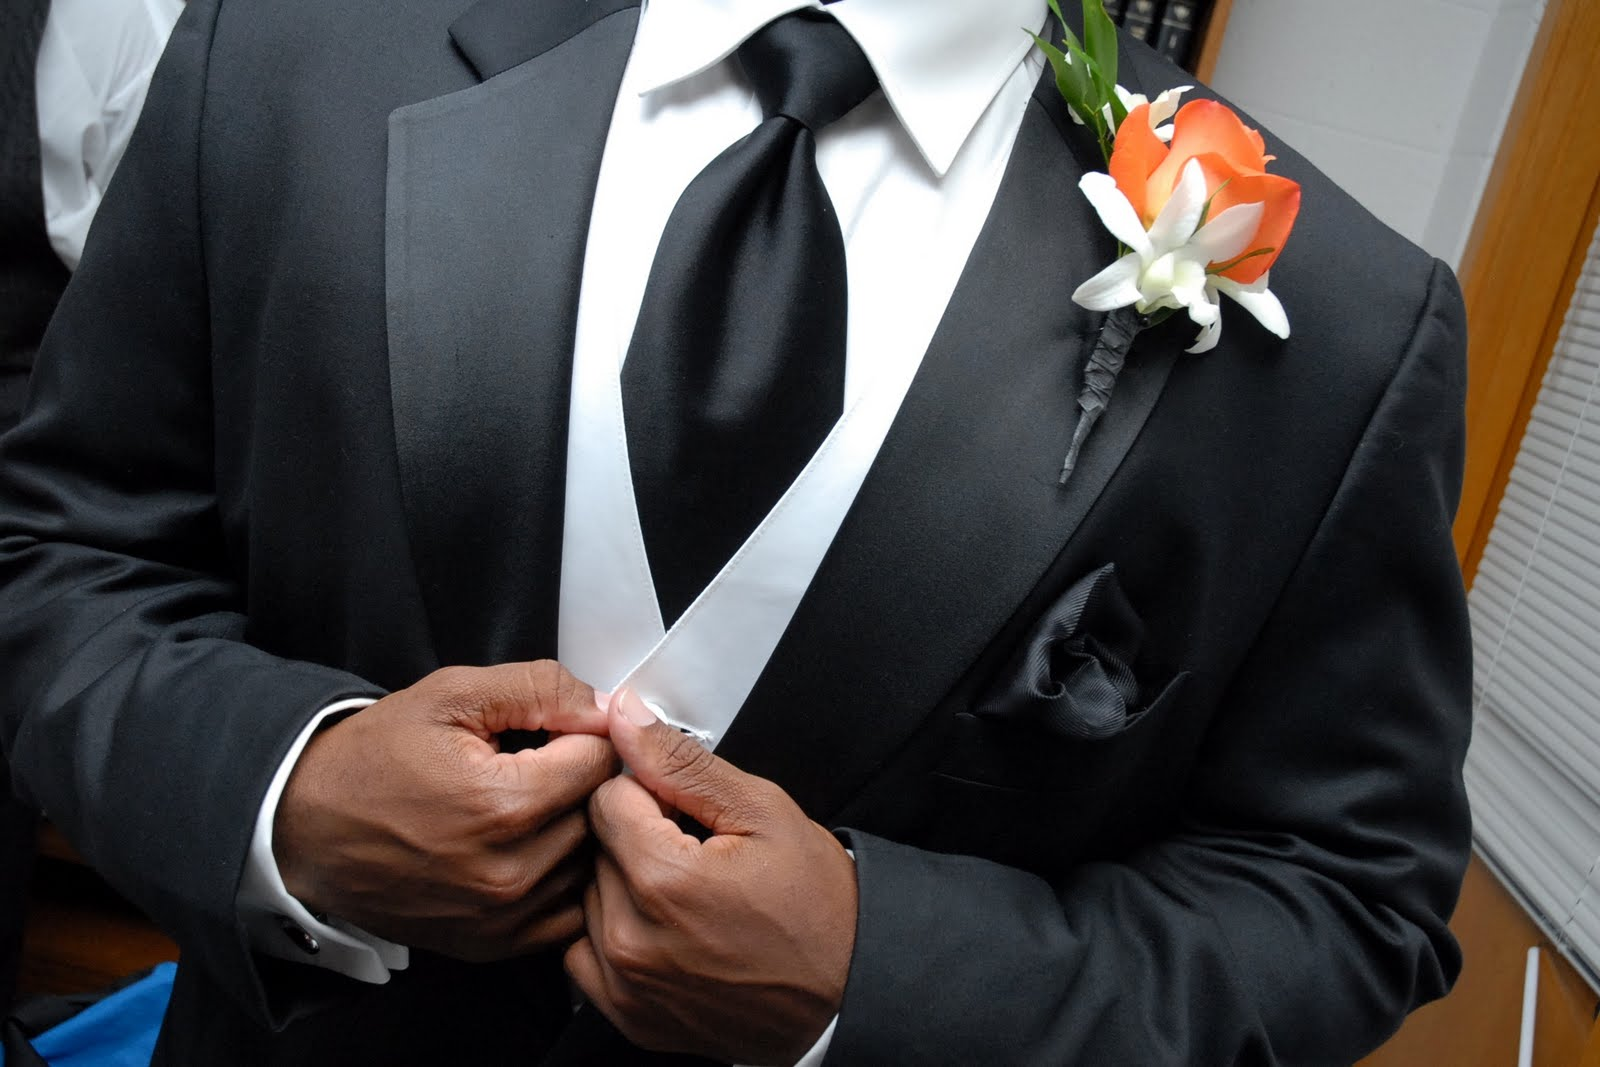 Boutonniere Or Pocket Square For The Wedding?